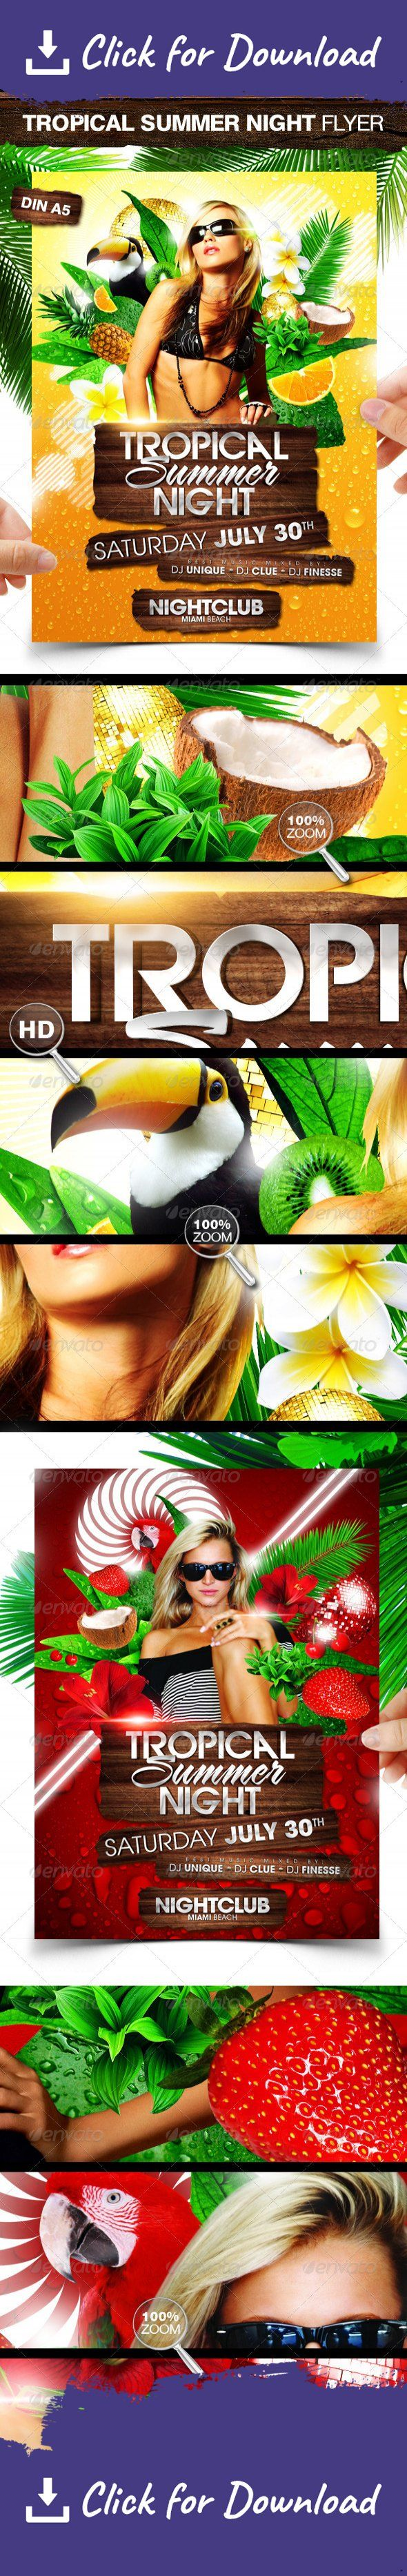 """beach, break, club, disco, event, exotic, flower, fruit, girl, holiday, house, jungle, music, night, nightclub, palm, paradise, party flyer, poster, reggae, rnb, salsa, sexy, spring, summer, tropical, water, wild, woman, wood """"Tropical Summer Night"""" party flyer template for any fresh summer event in 2 different designs. Hope you like it.   You get 2 x DIN A5 Flyer A yellow version and a red version. both with different elements.   You can modify everything very easy and quick. Changin..."""